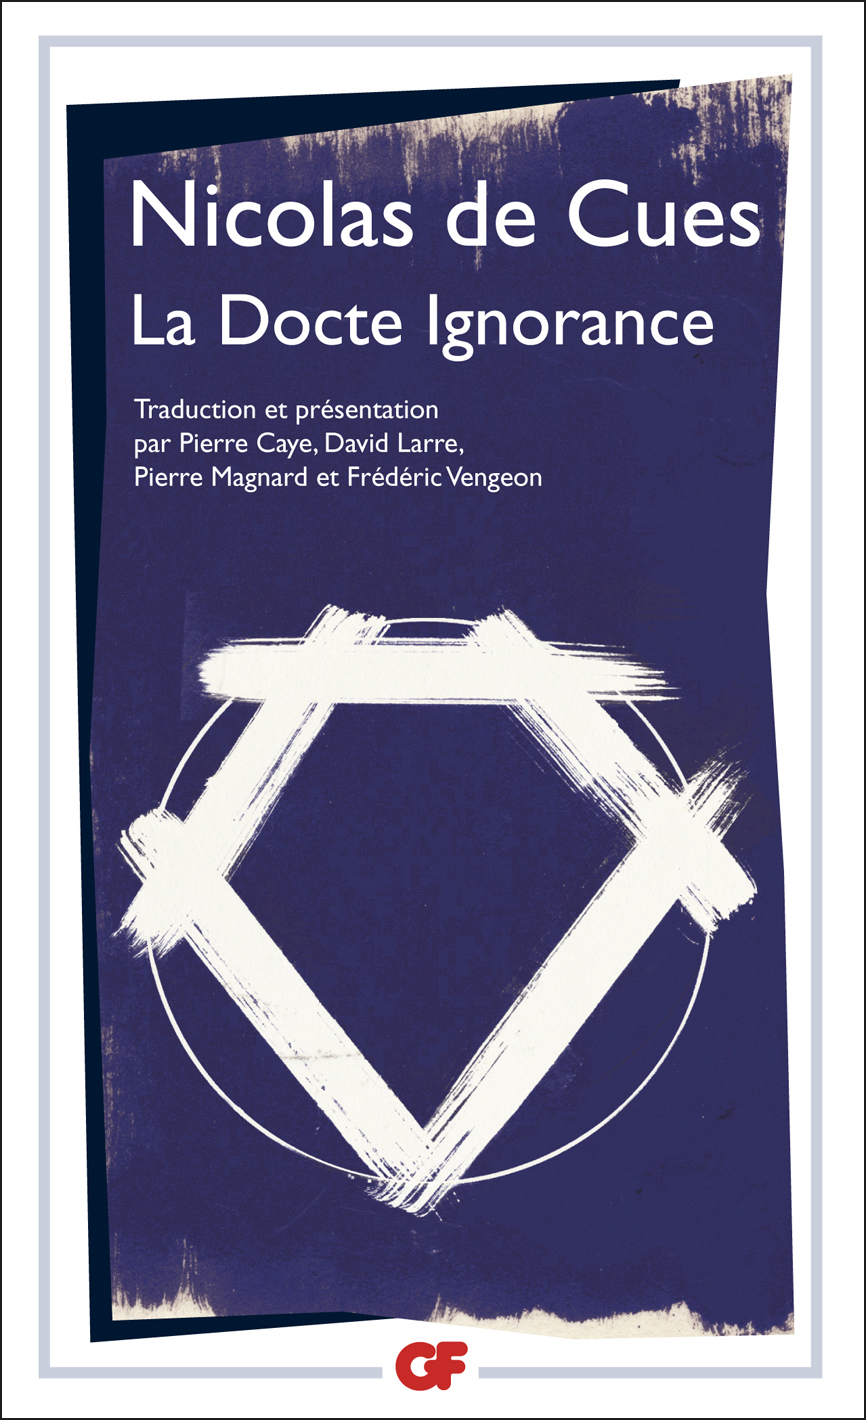 La Docte Ignorance